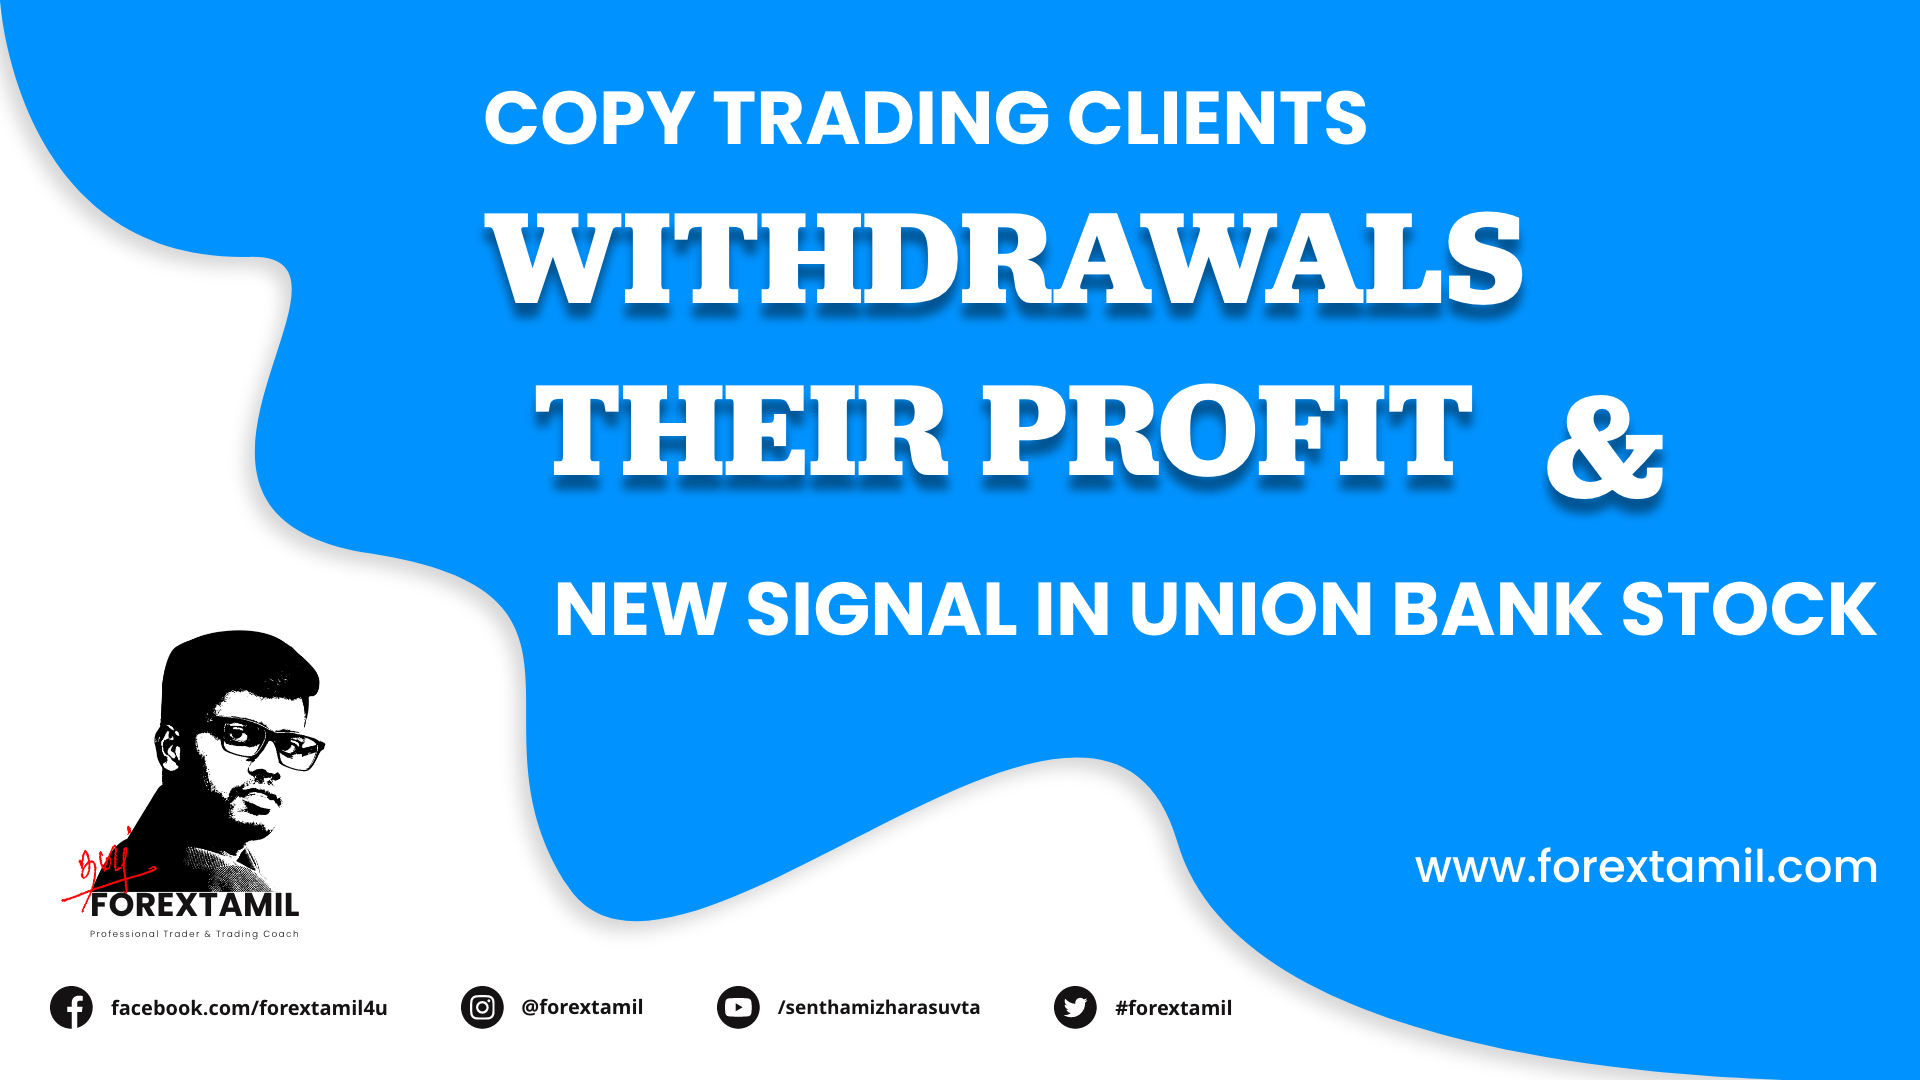 Copy Trading Clients Withdrawals Their Profit And New Signal In Union Bank Stock